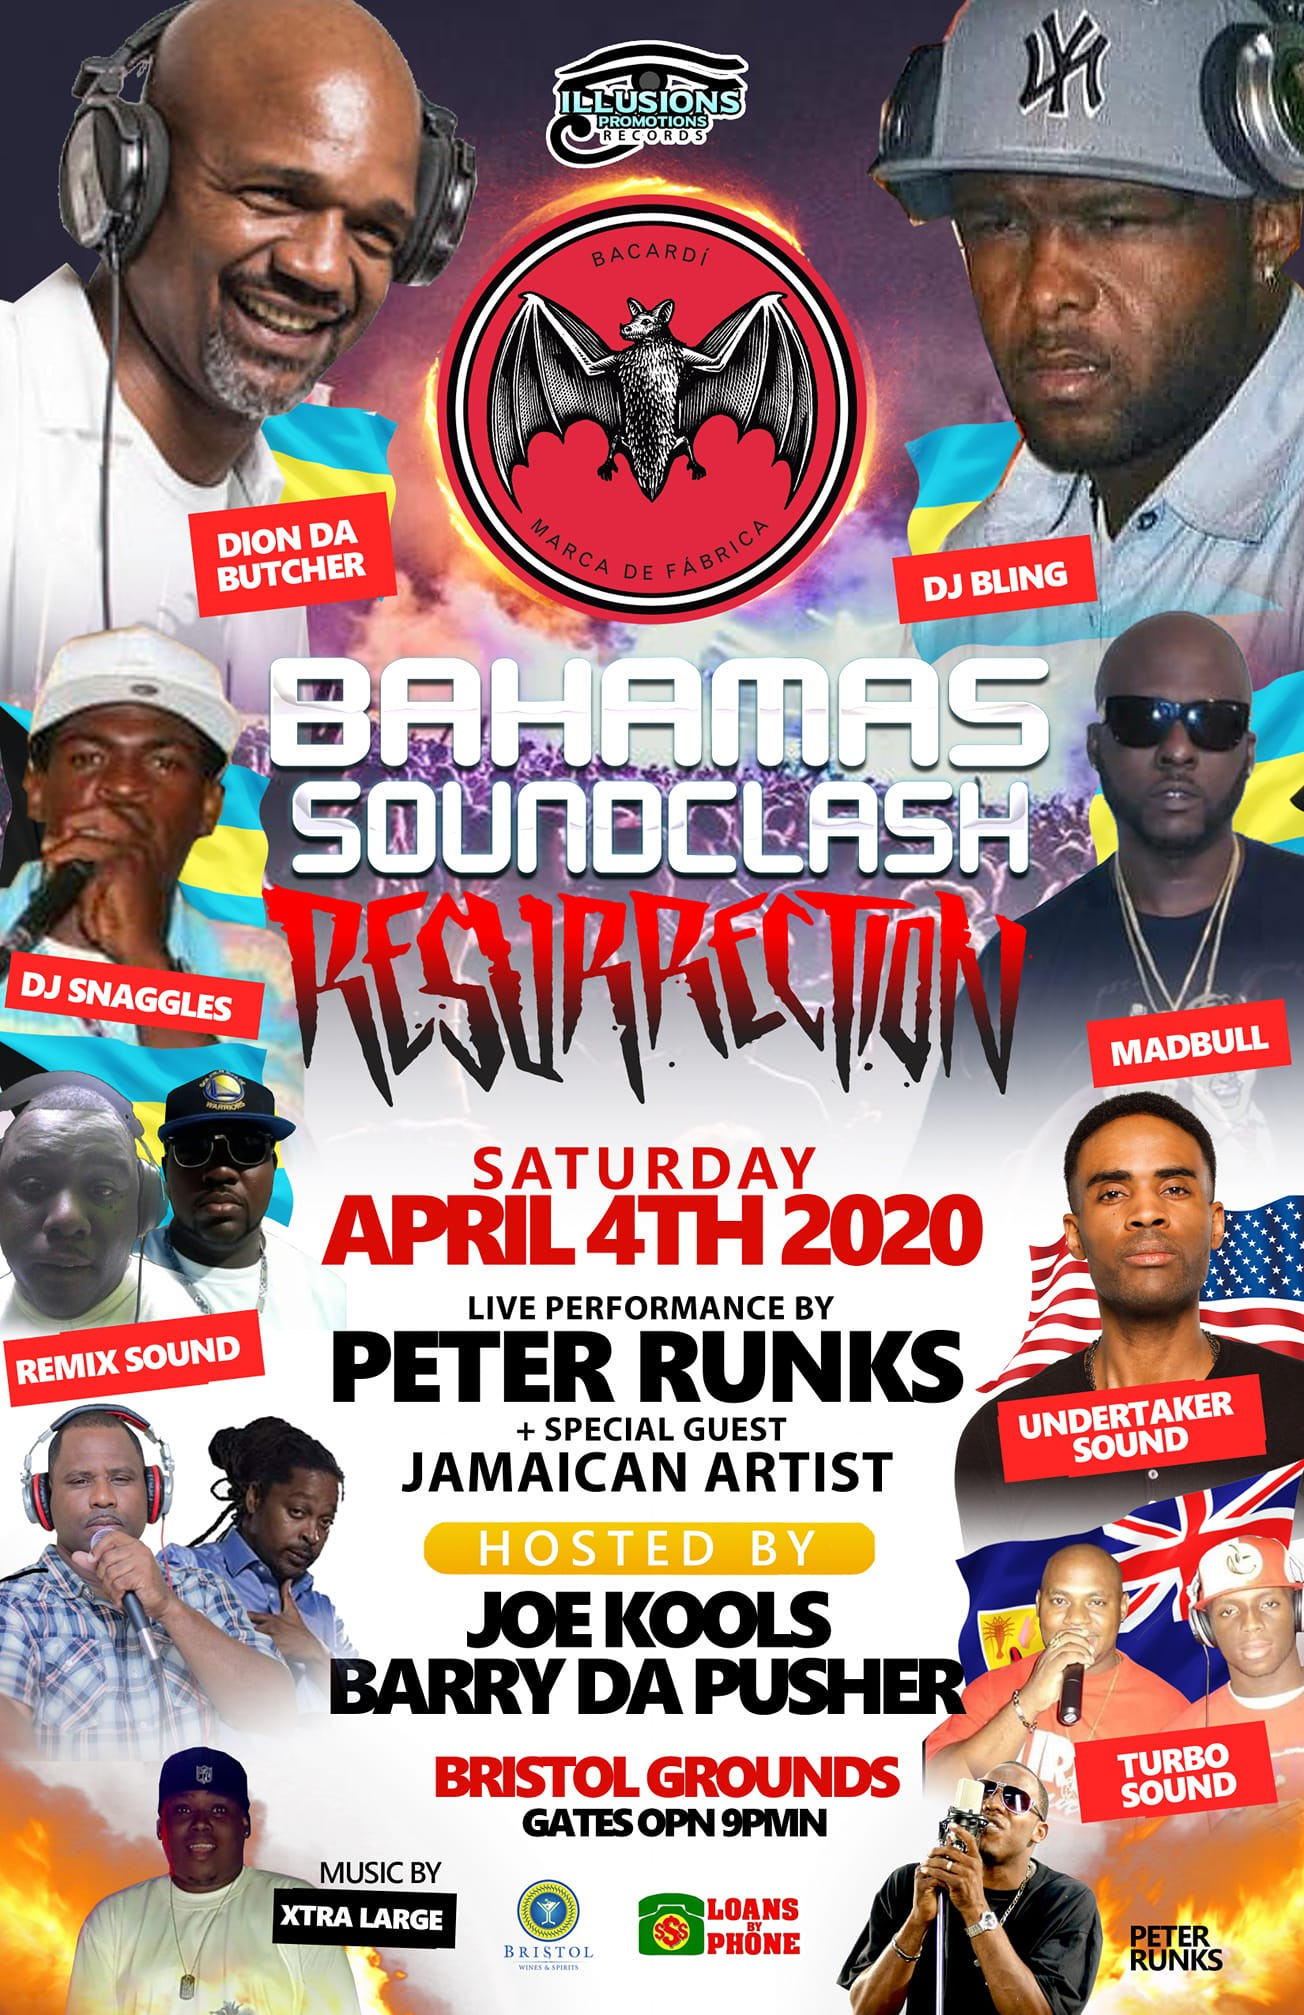 BAHAMAS SOUNDCLASH RESURRECTION WAR ABLAZE on Apr 04, 21:00@BRISTOL GROUNDS - Buy tickets and Get information on Illusions Promotions